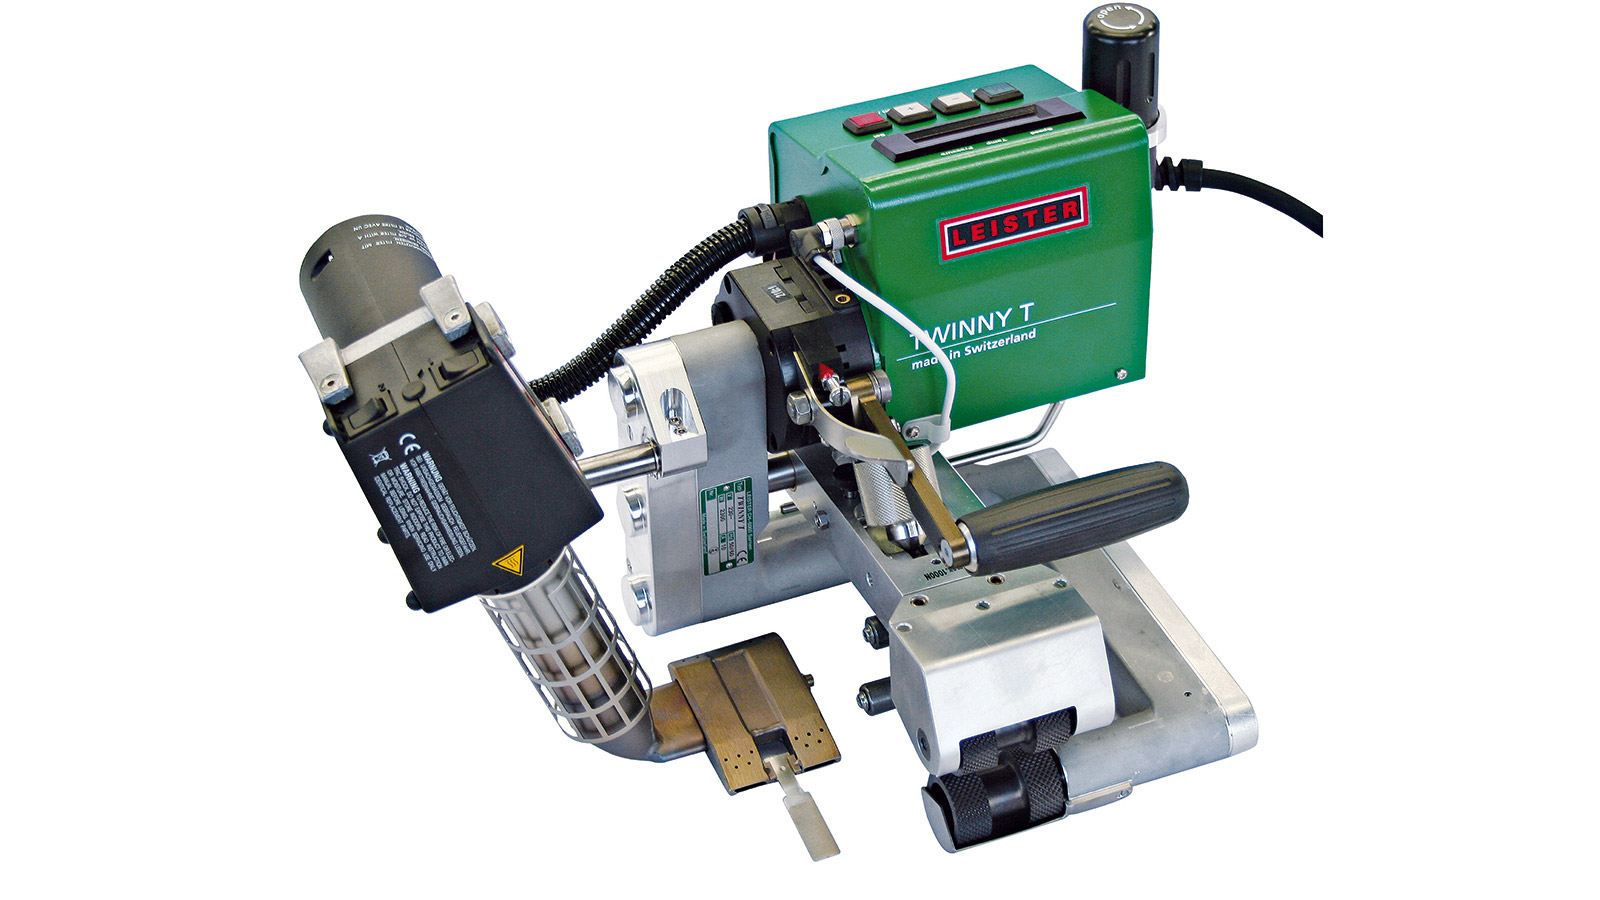 TWINNY T USB Combi-wedge welder